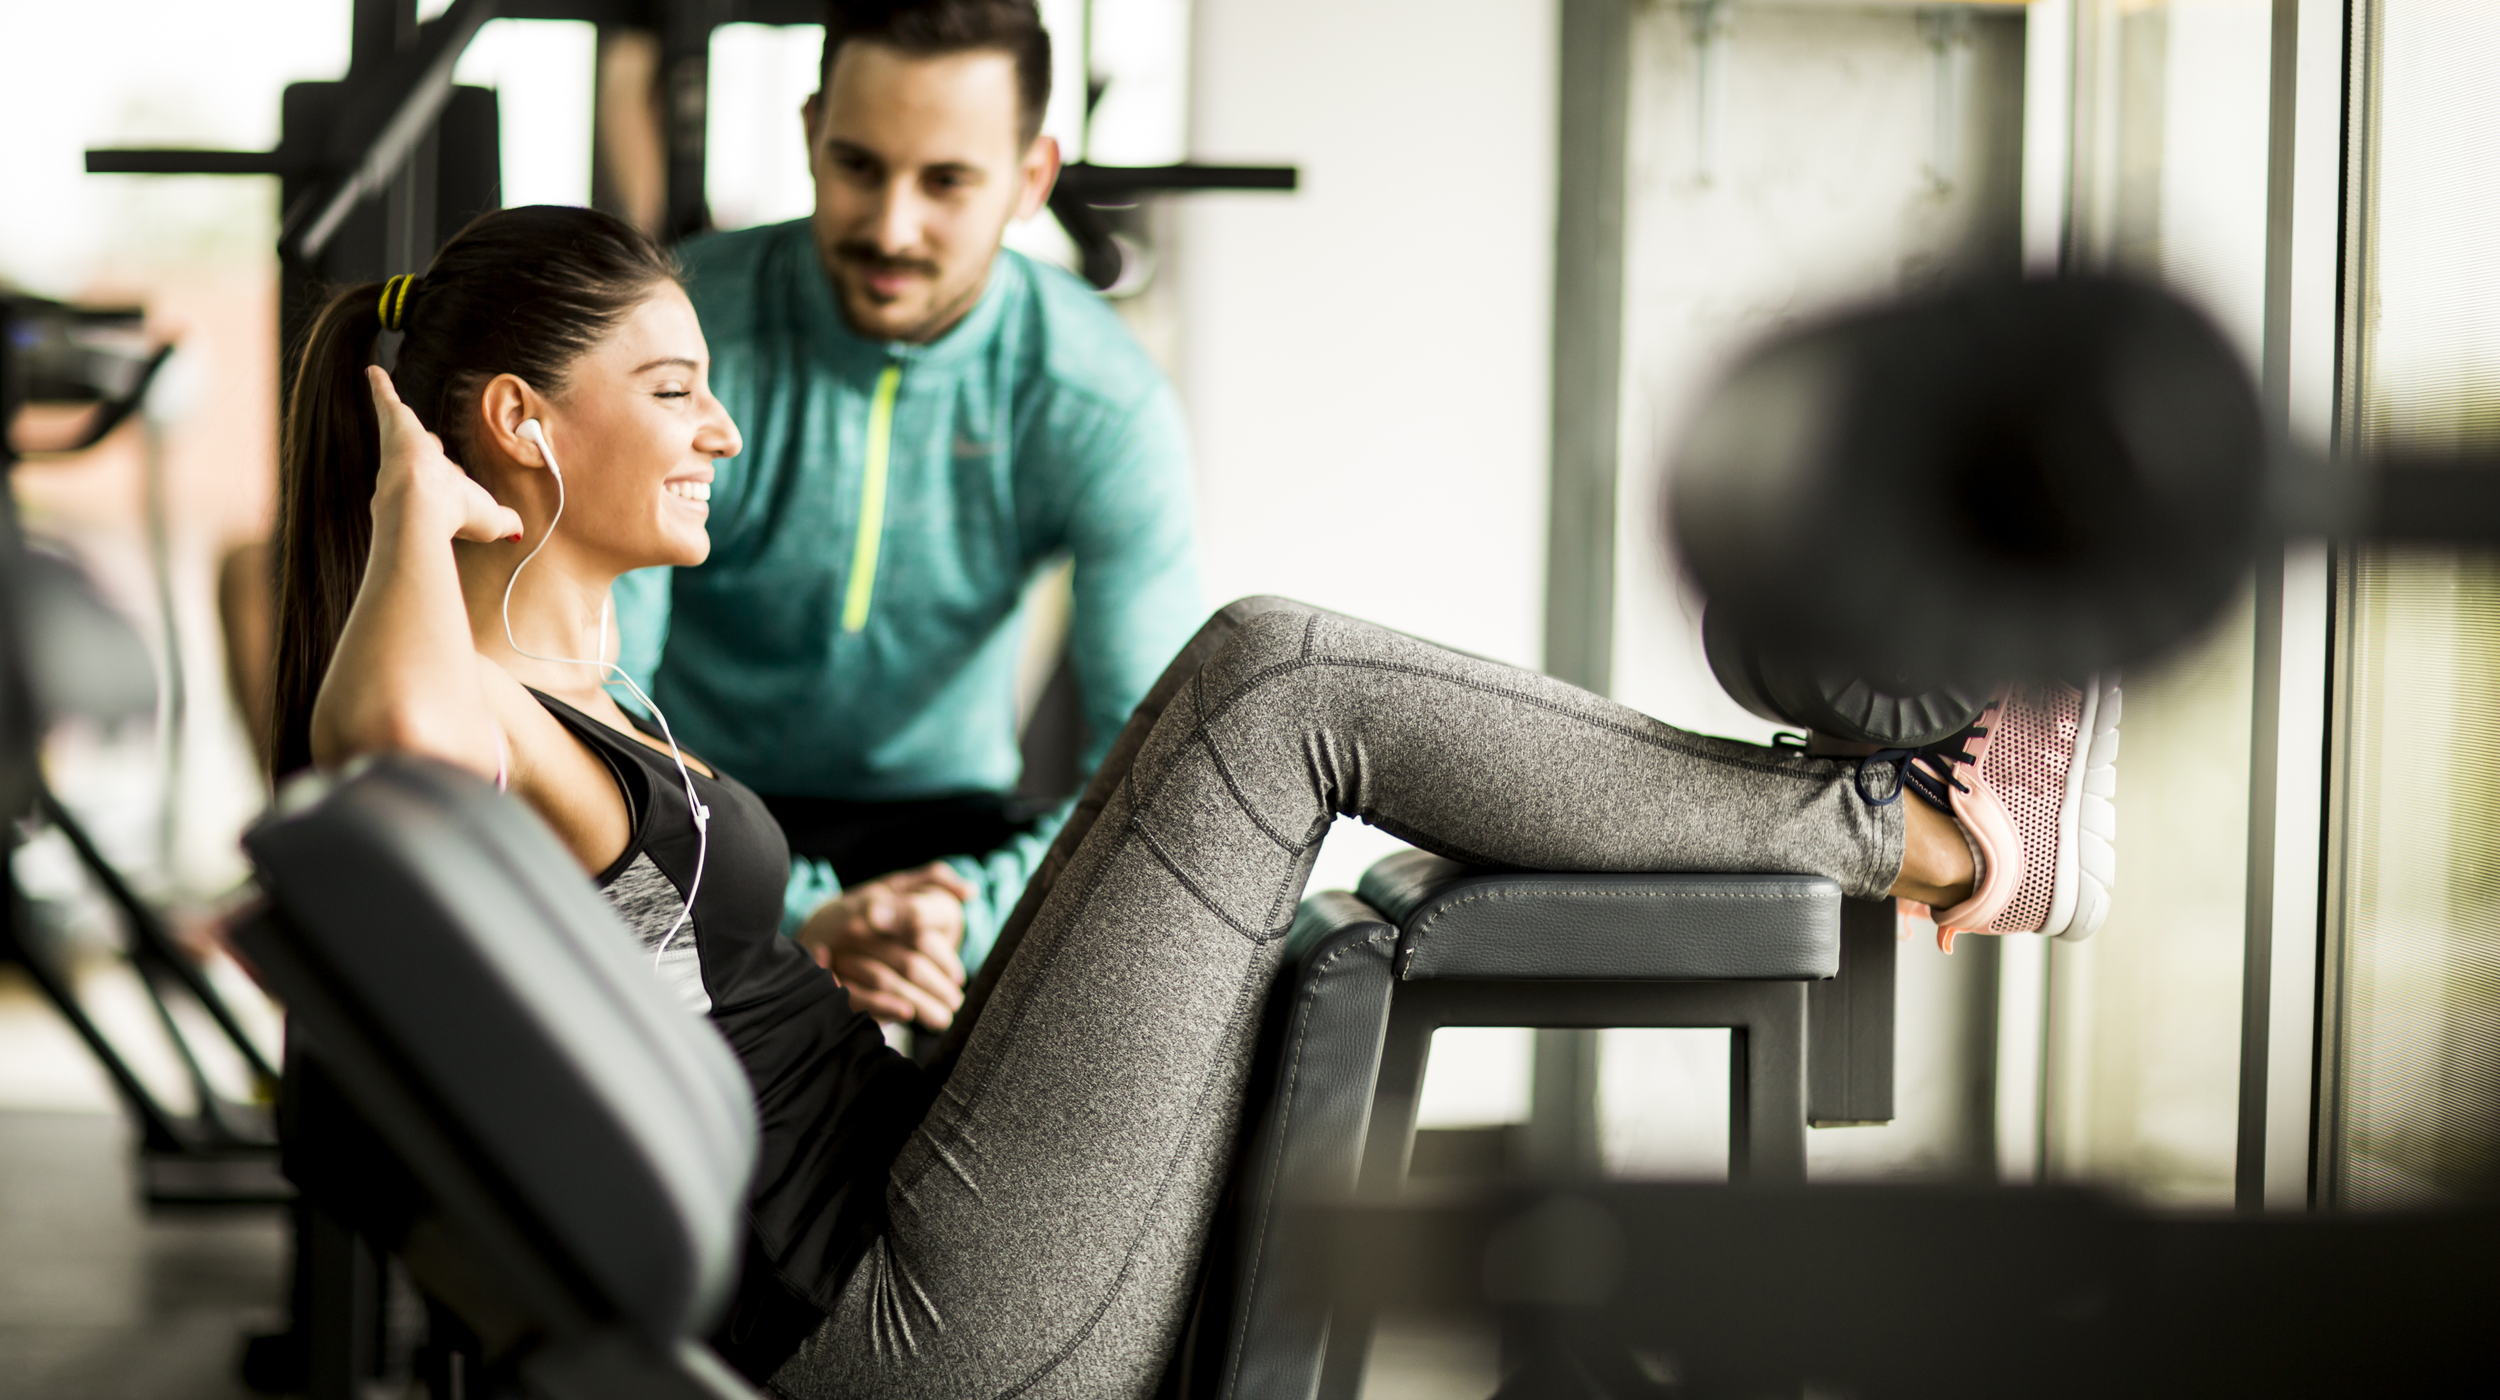 Top 5 Things You Should NOT do as a Personal Trainer